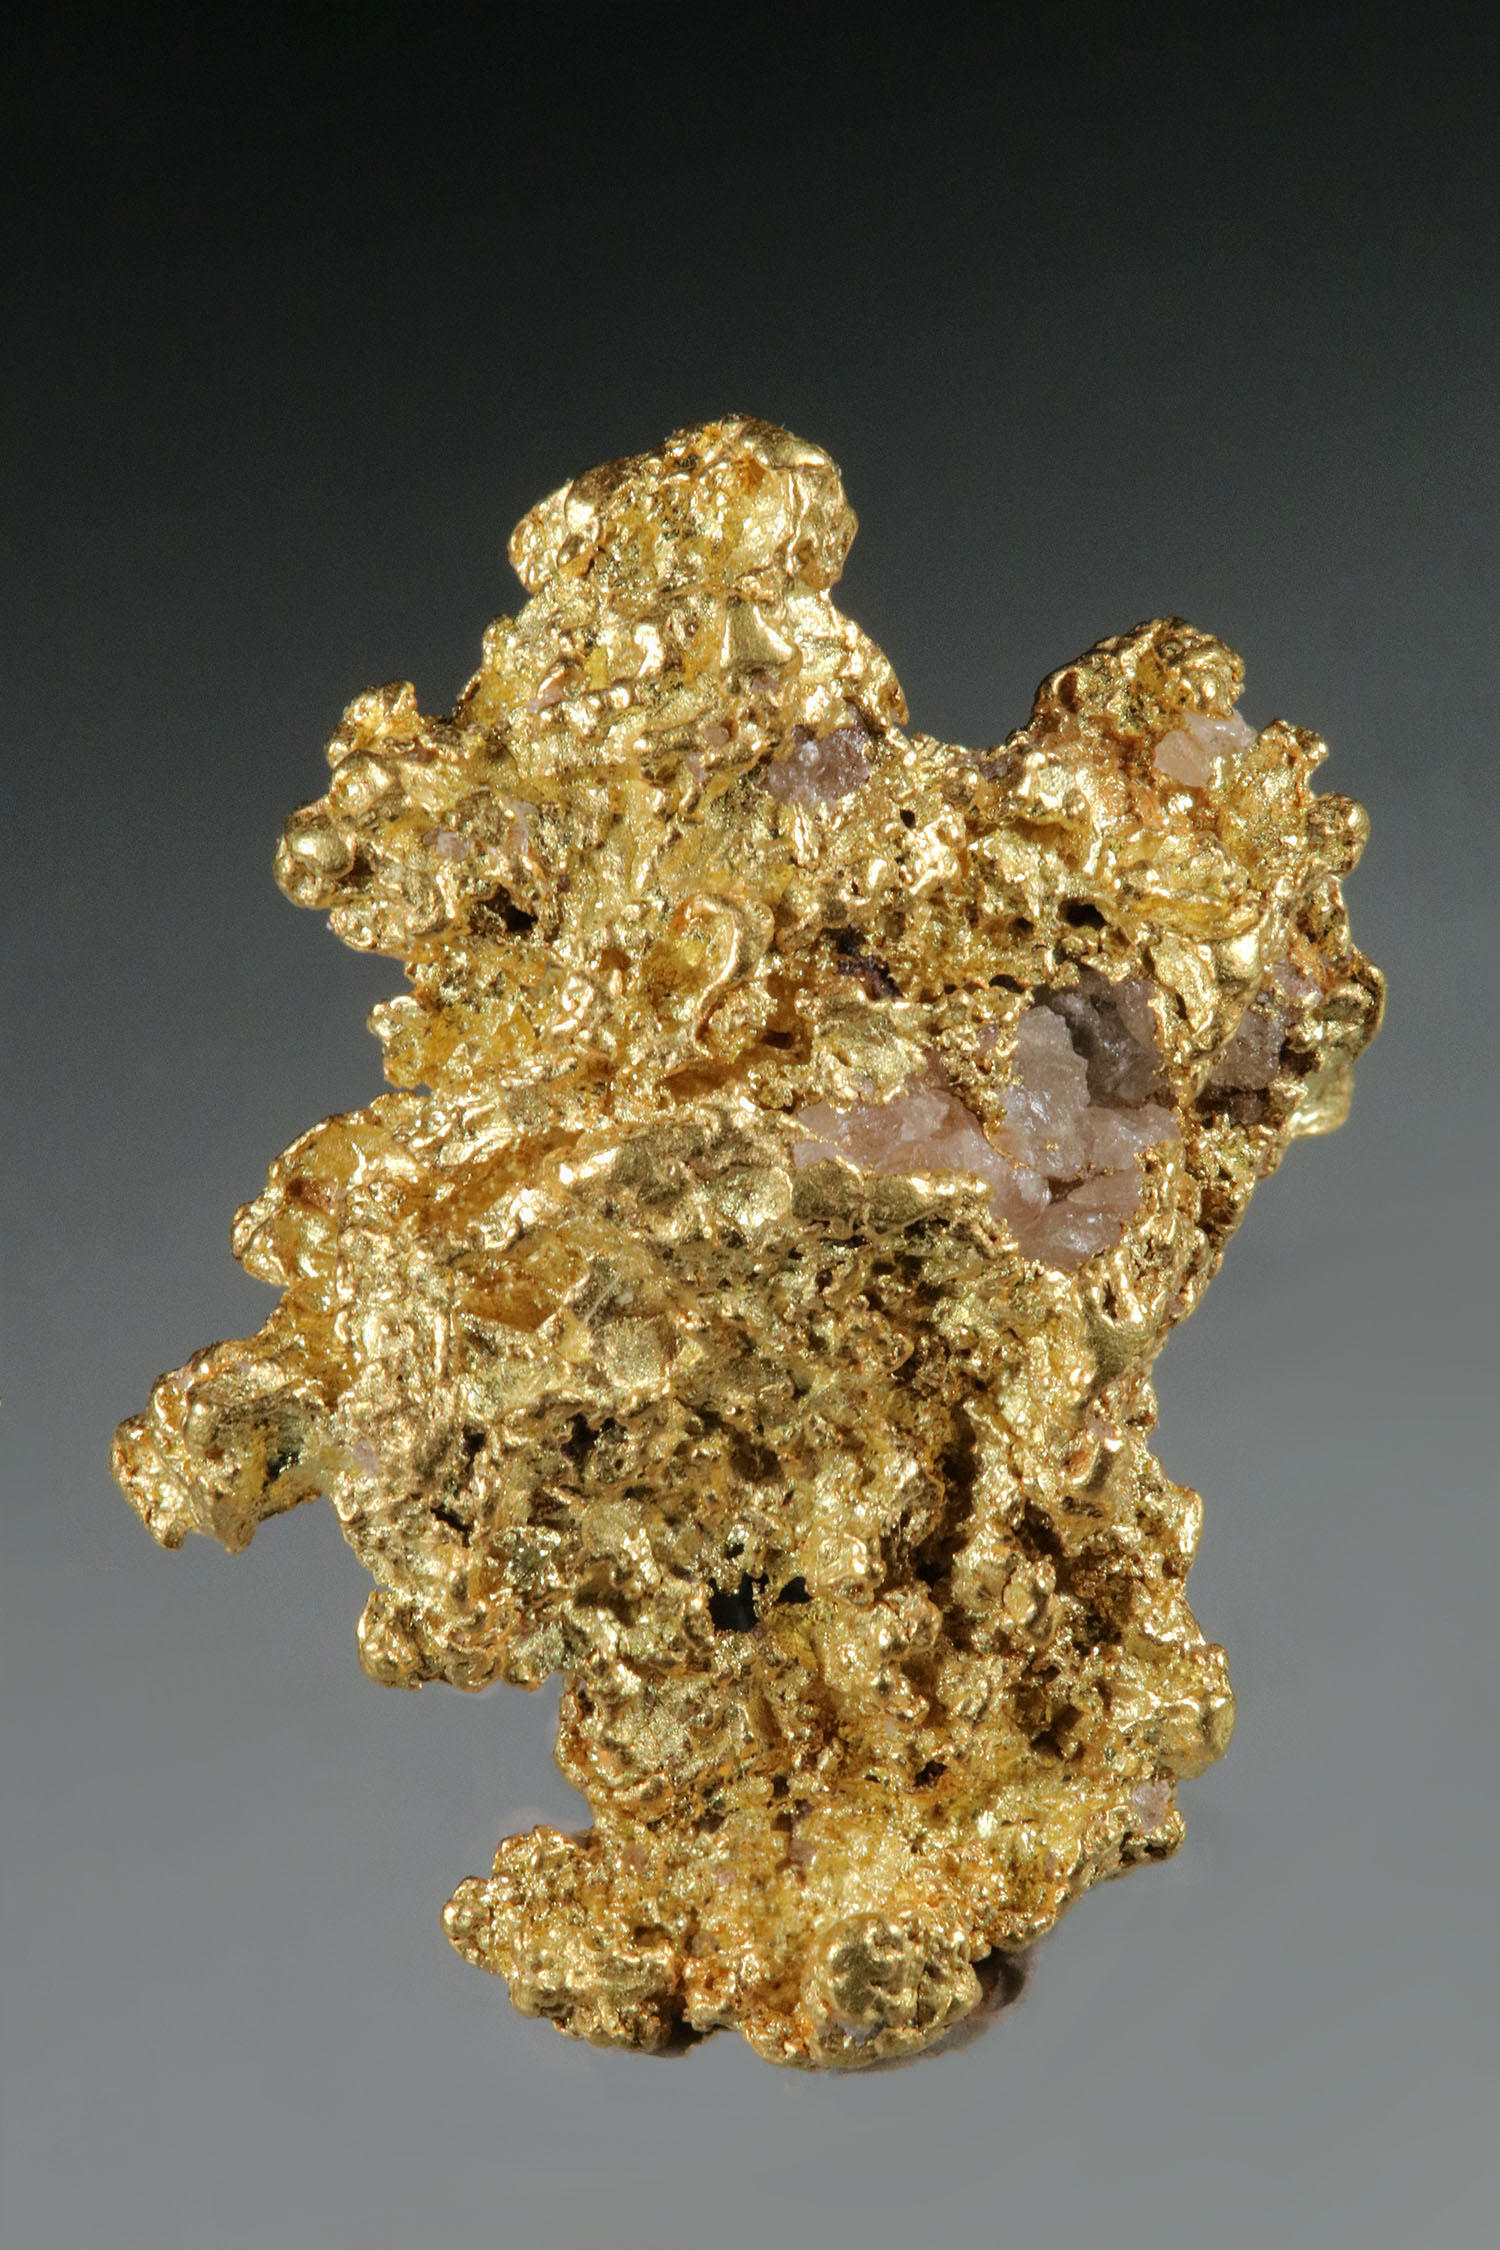 Crystalline Gold Nugget - Jewelry Grade from Australia